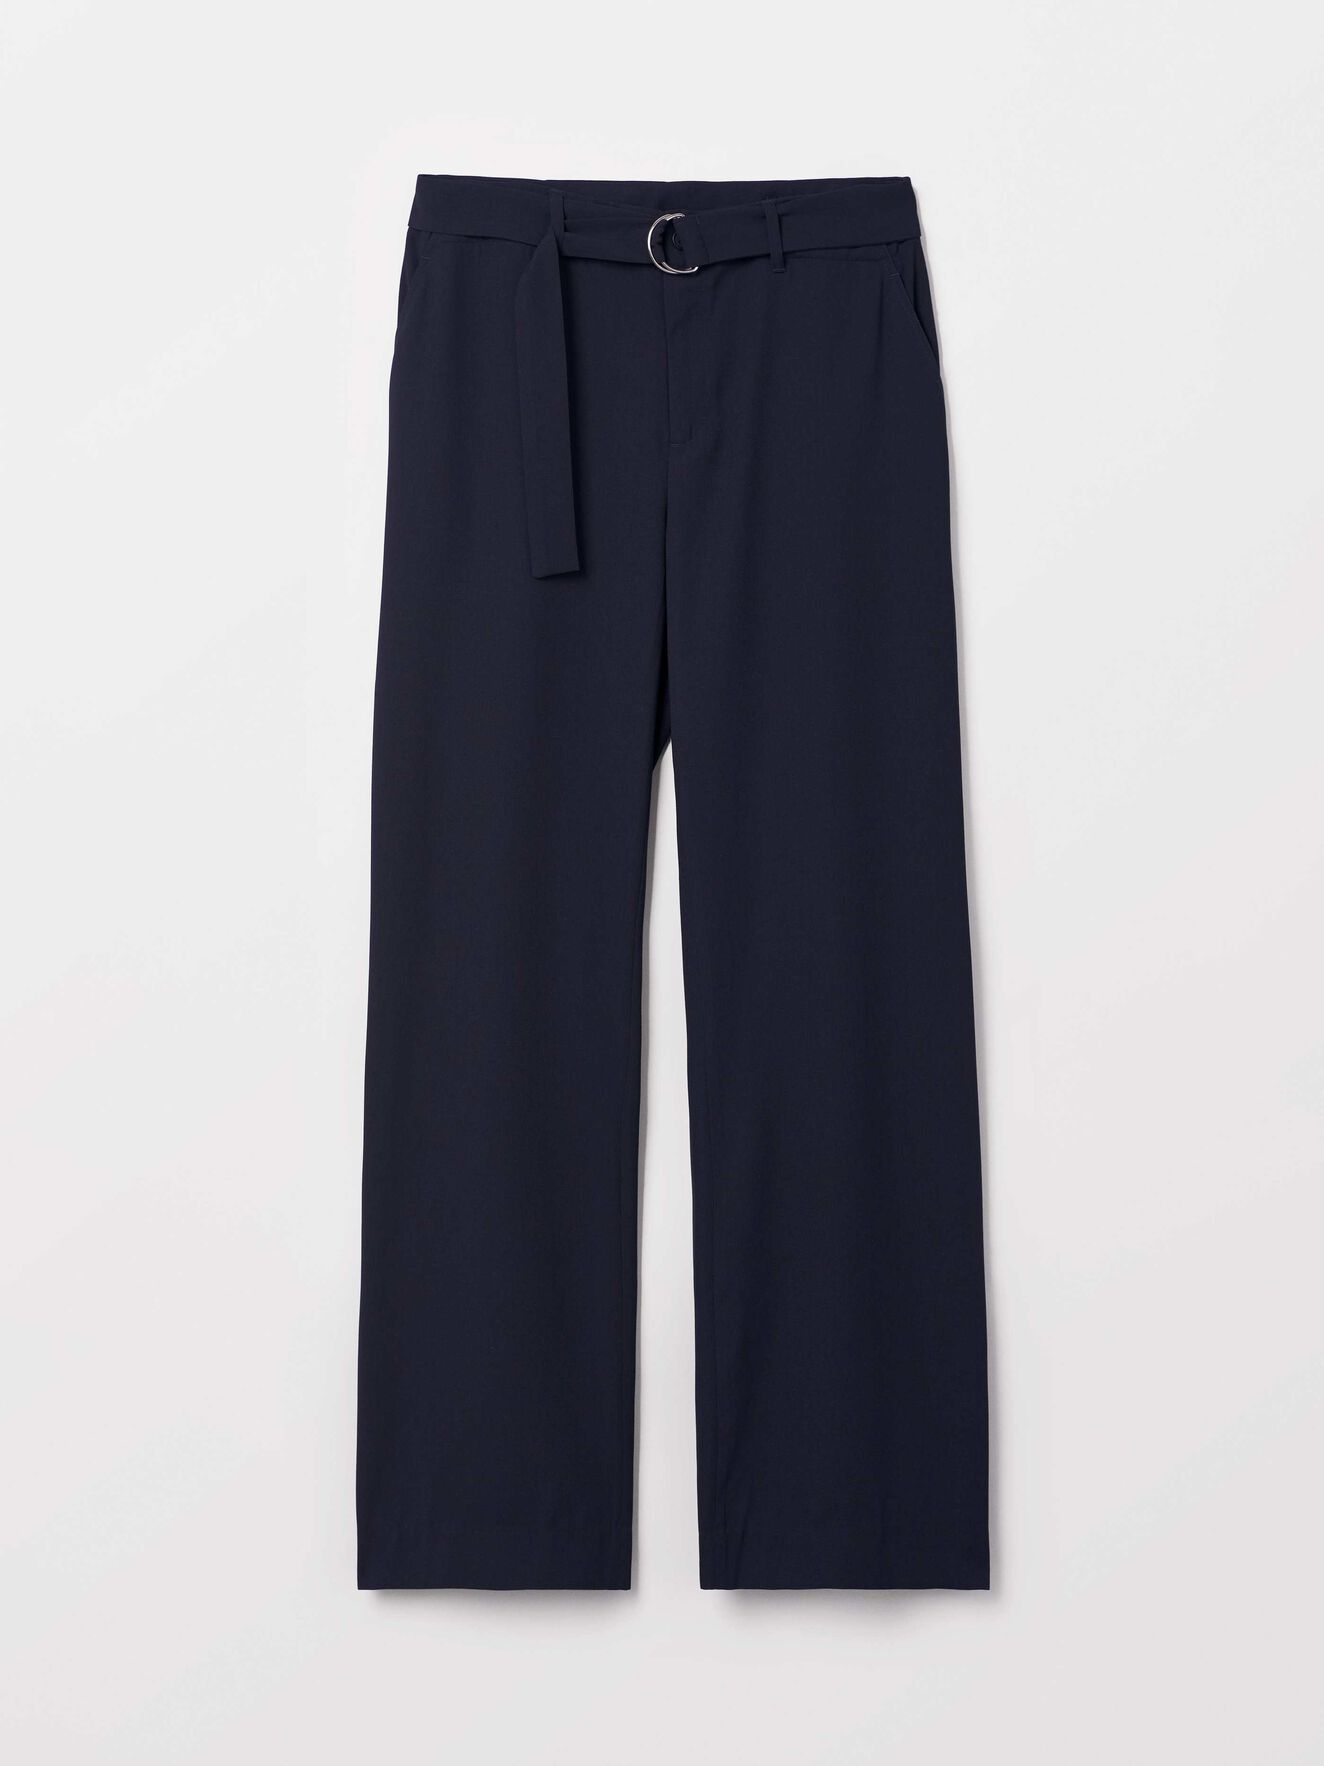 Bice Trousers in Deep Well from Tiger of Sweden